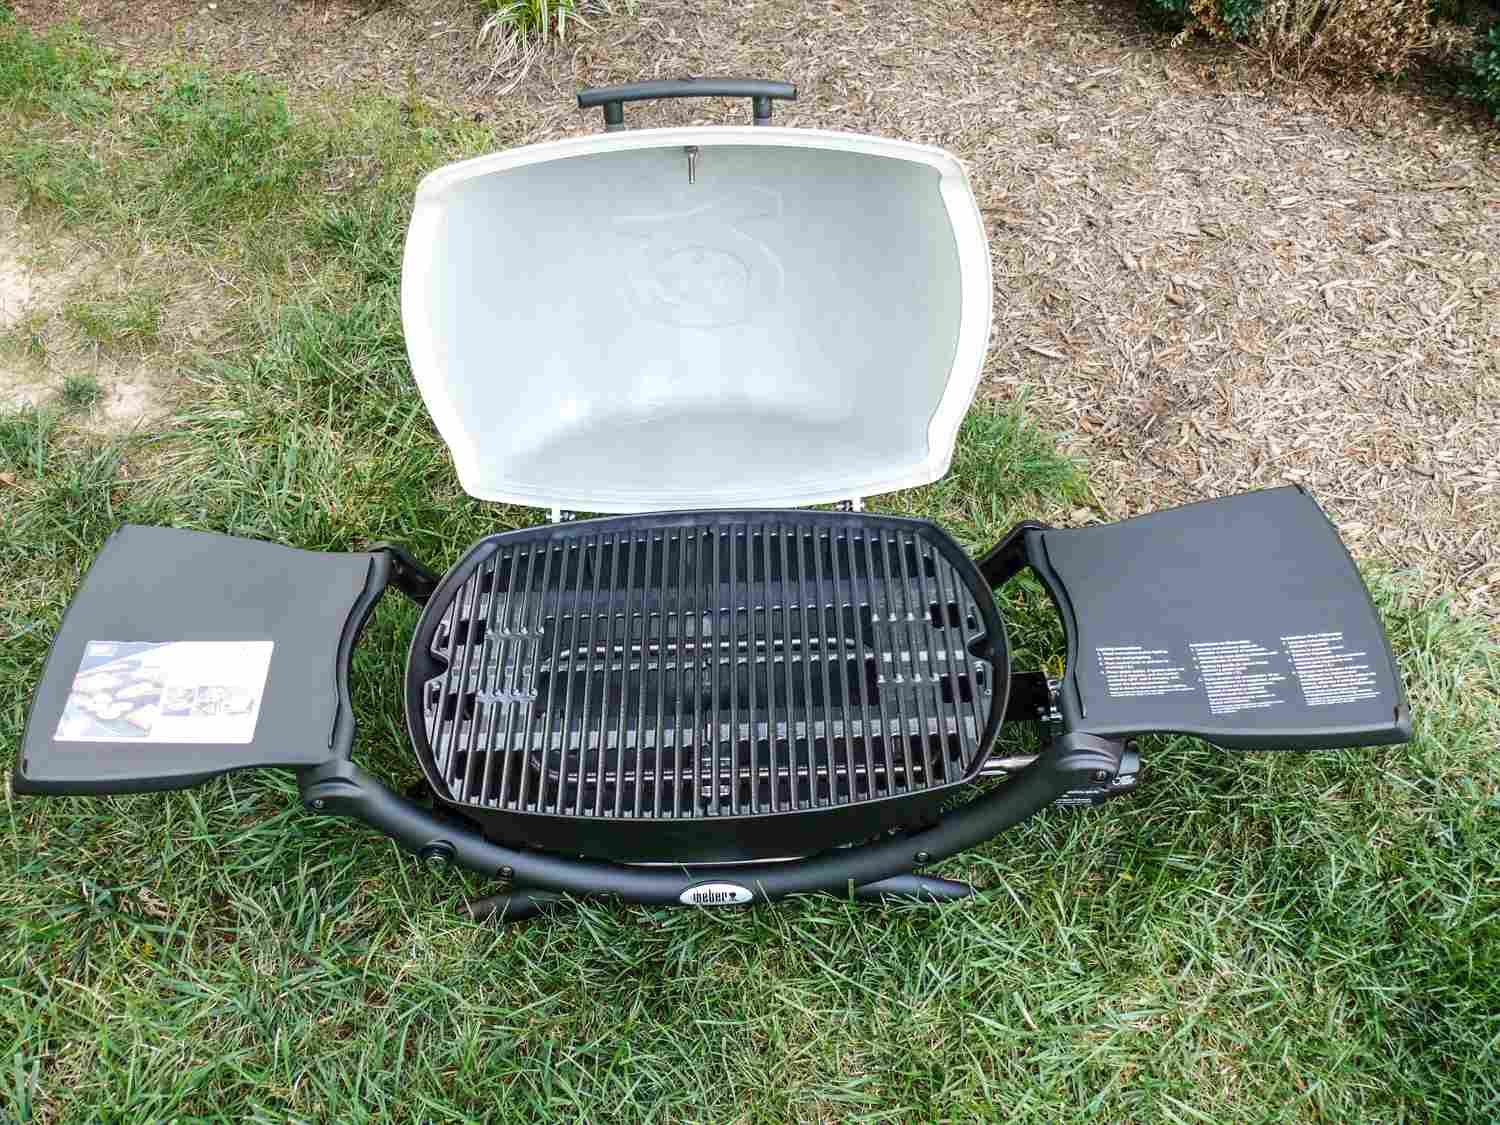 The 10 Best Portable Grills To Buy In 2018